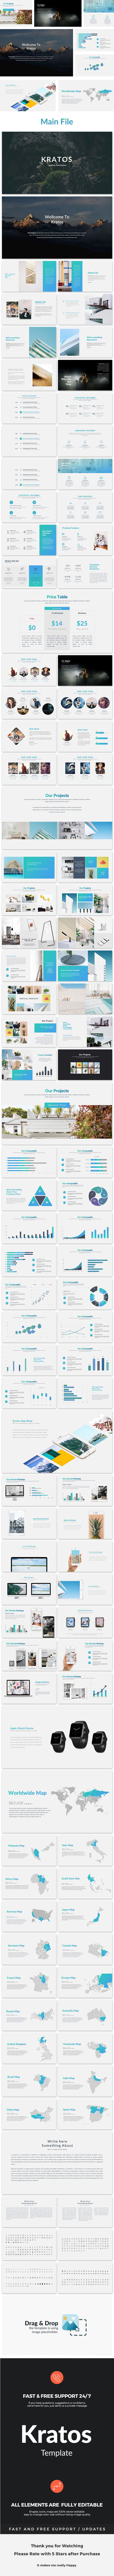 Kratos Creative Powerpoint Template #powerpoint #pptx #icon #social • Download ➝ https://graphicriver.net/item/kratos-creative-powerpoint-template/18723479?ref=pxcr